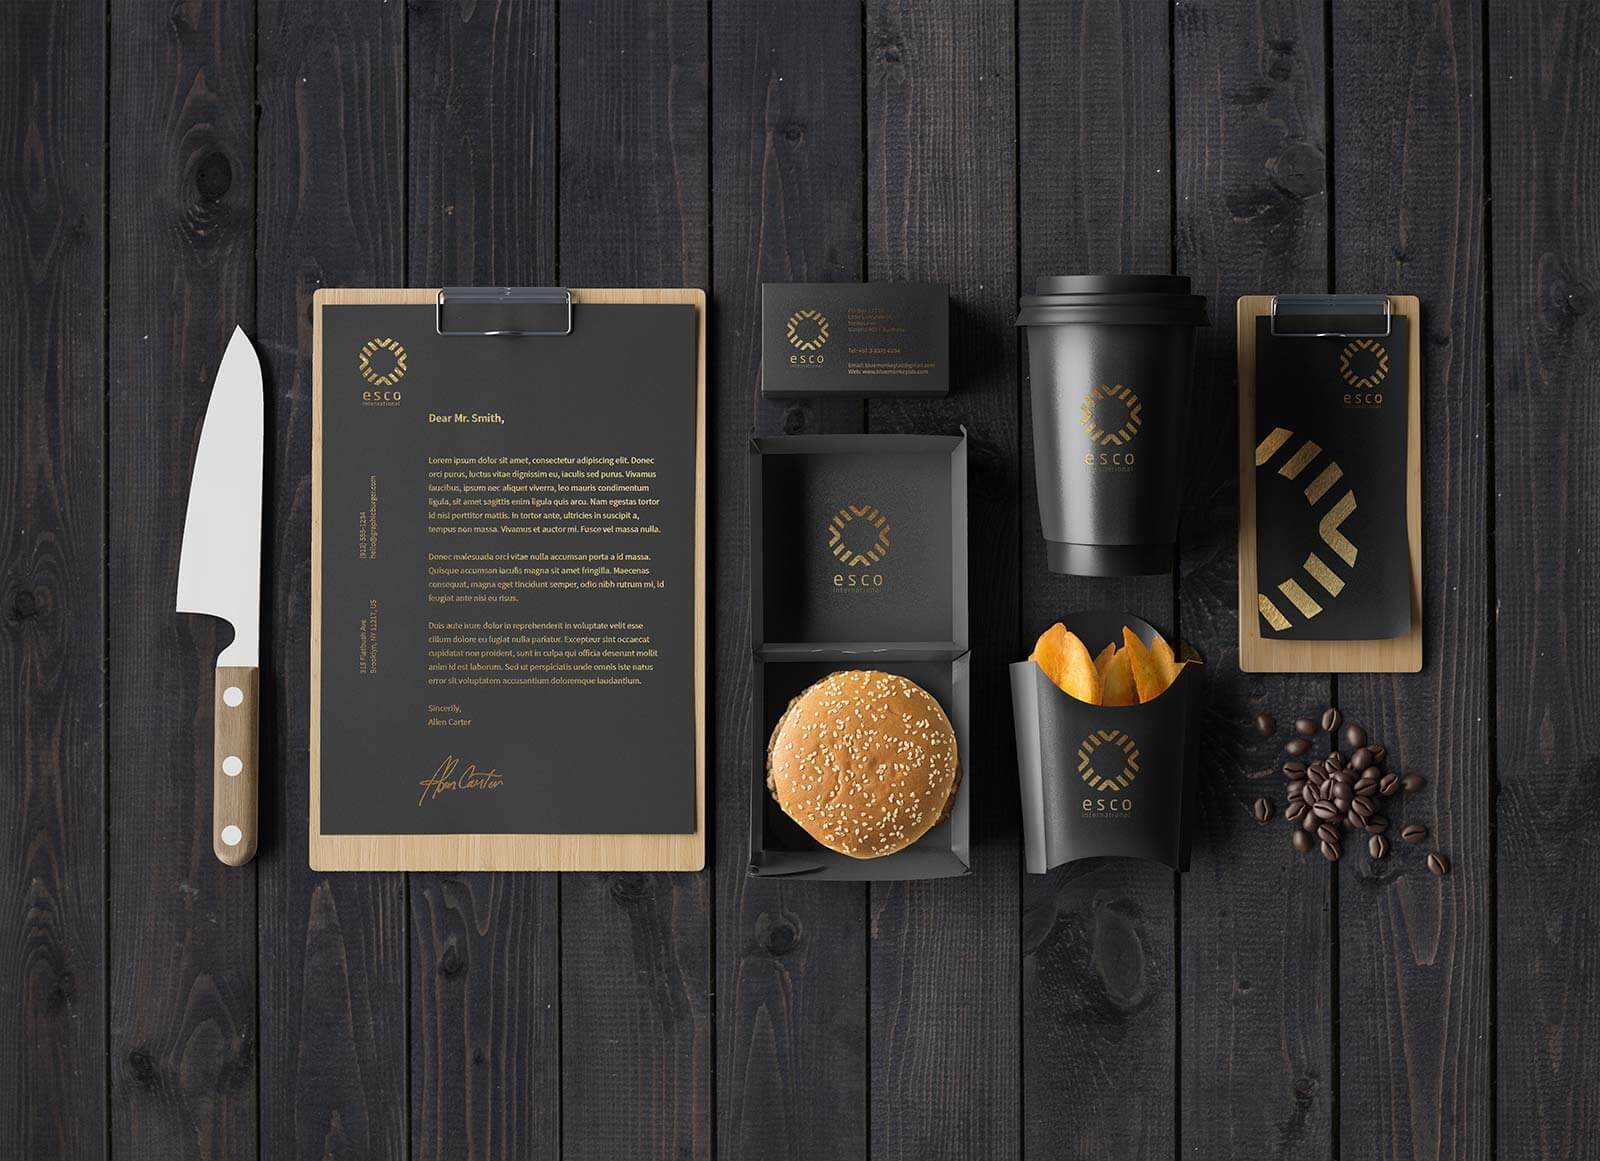 Free-Dark-Coffee-Brand-Identity-Stationery-Mockup-PSD